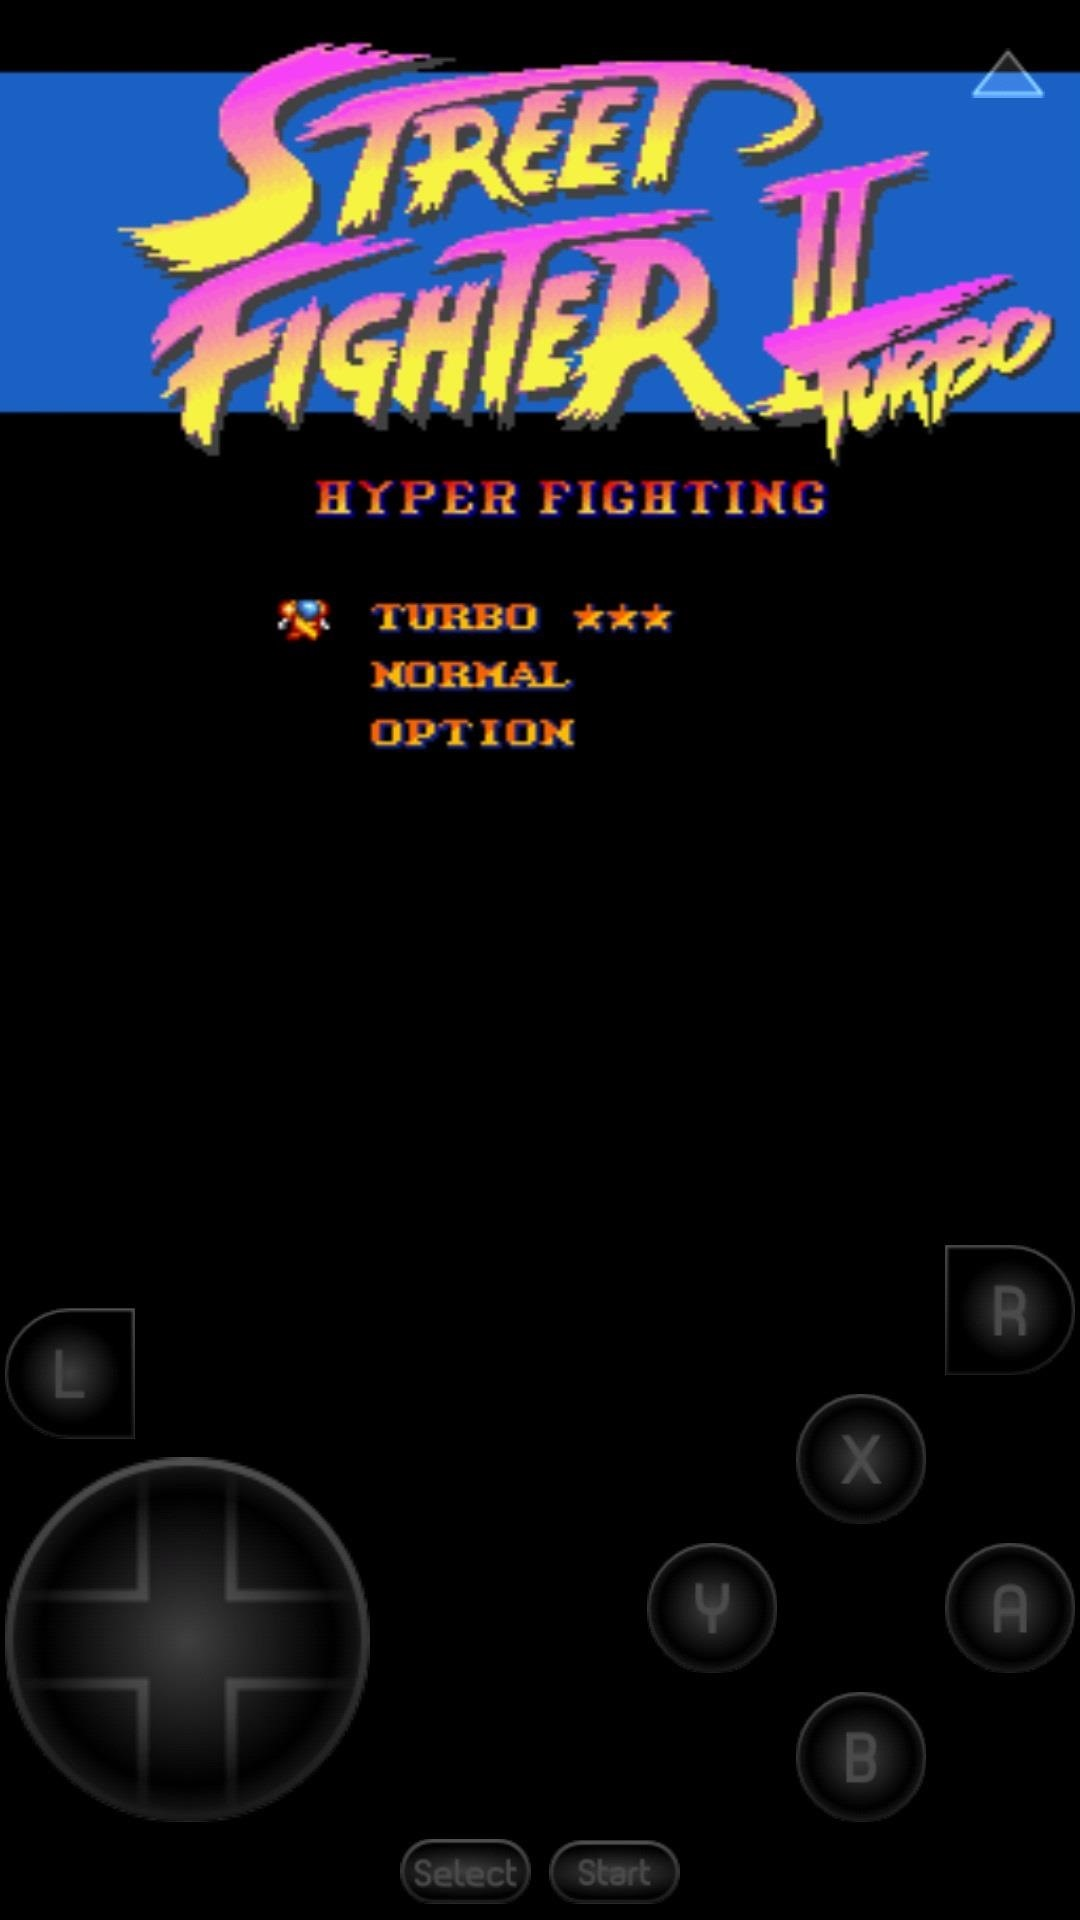 How to Turn Your HTC One into a Portable Super Nintendo Gaming System